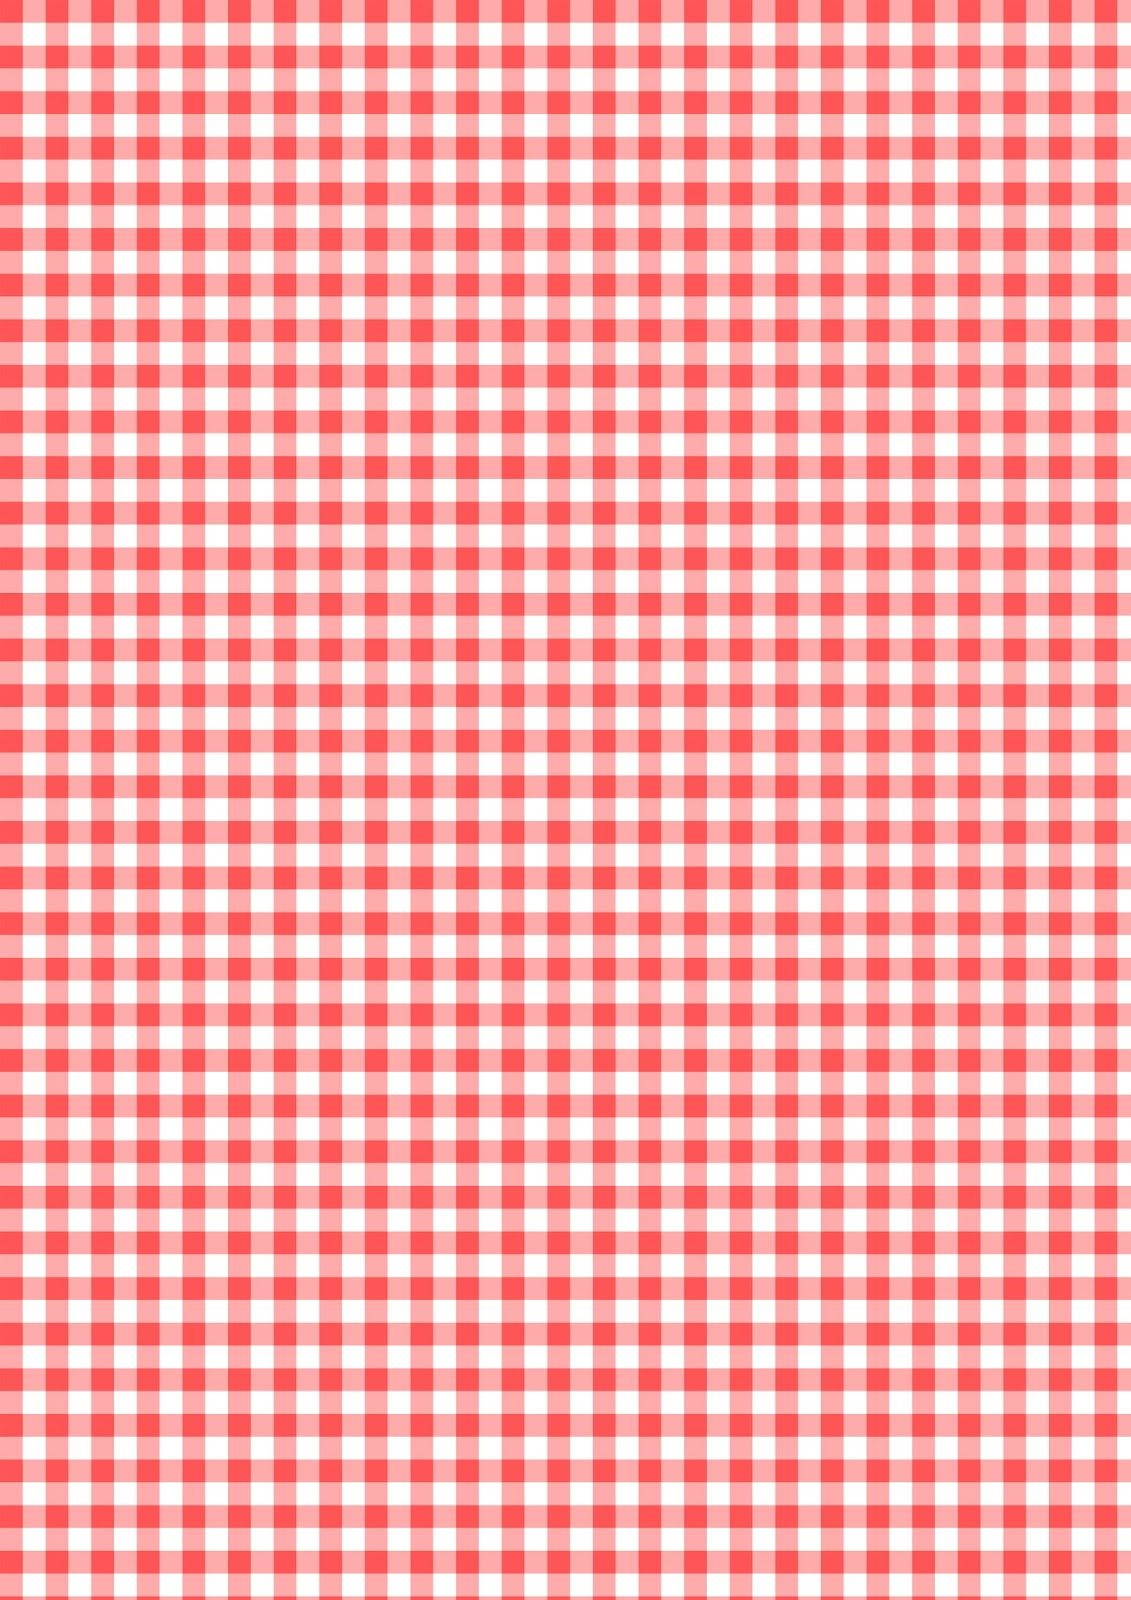 Free clipart red and green ginham plaid jpg free library MeinLilaPark – DIY printables and downloads: Free digital red ... jpg free library